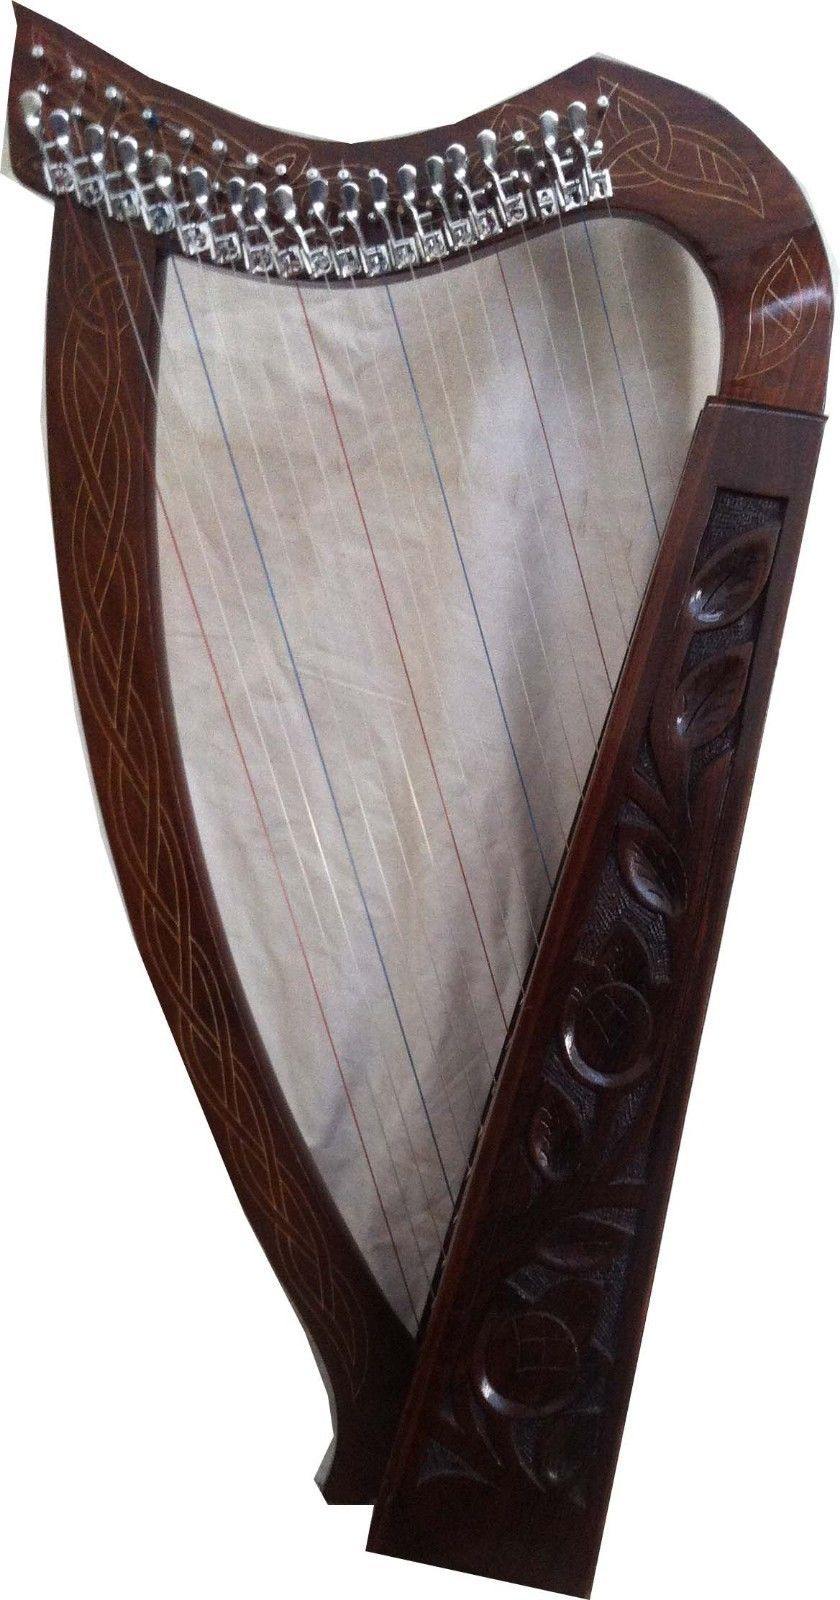 CP BRAND NEW 19 STRINGS HARP WITH LEVERS ROSEWOOD HAND CARVED FREE BAG & SHIP